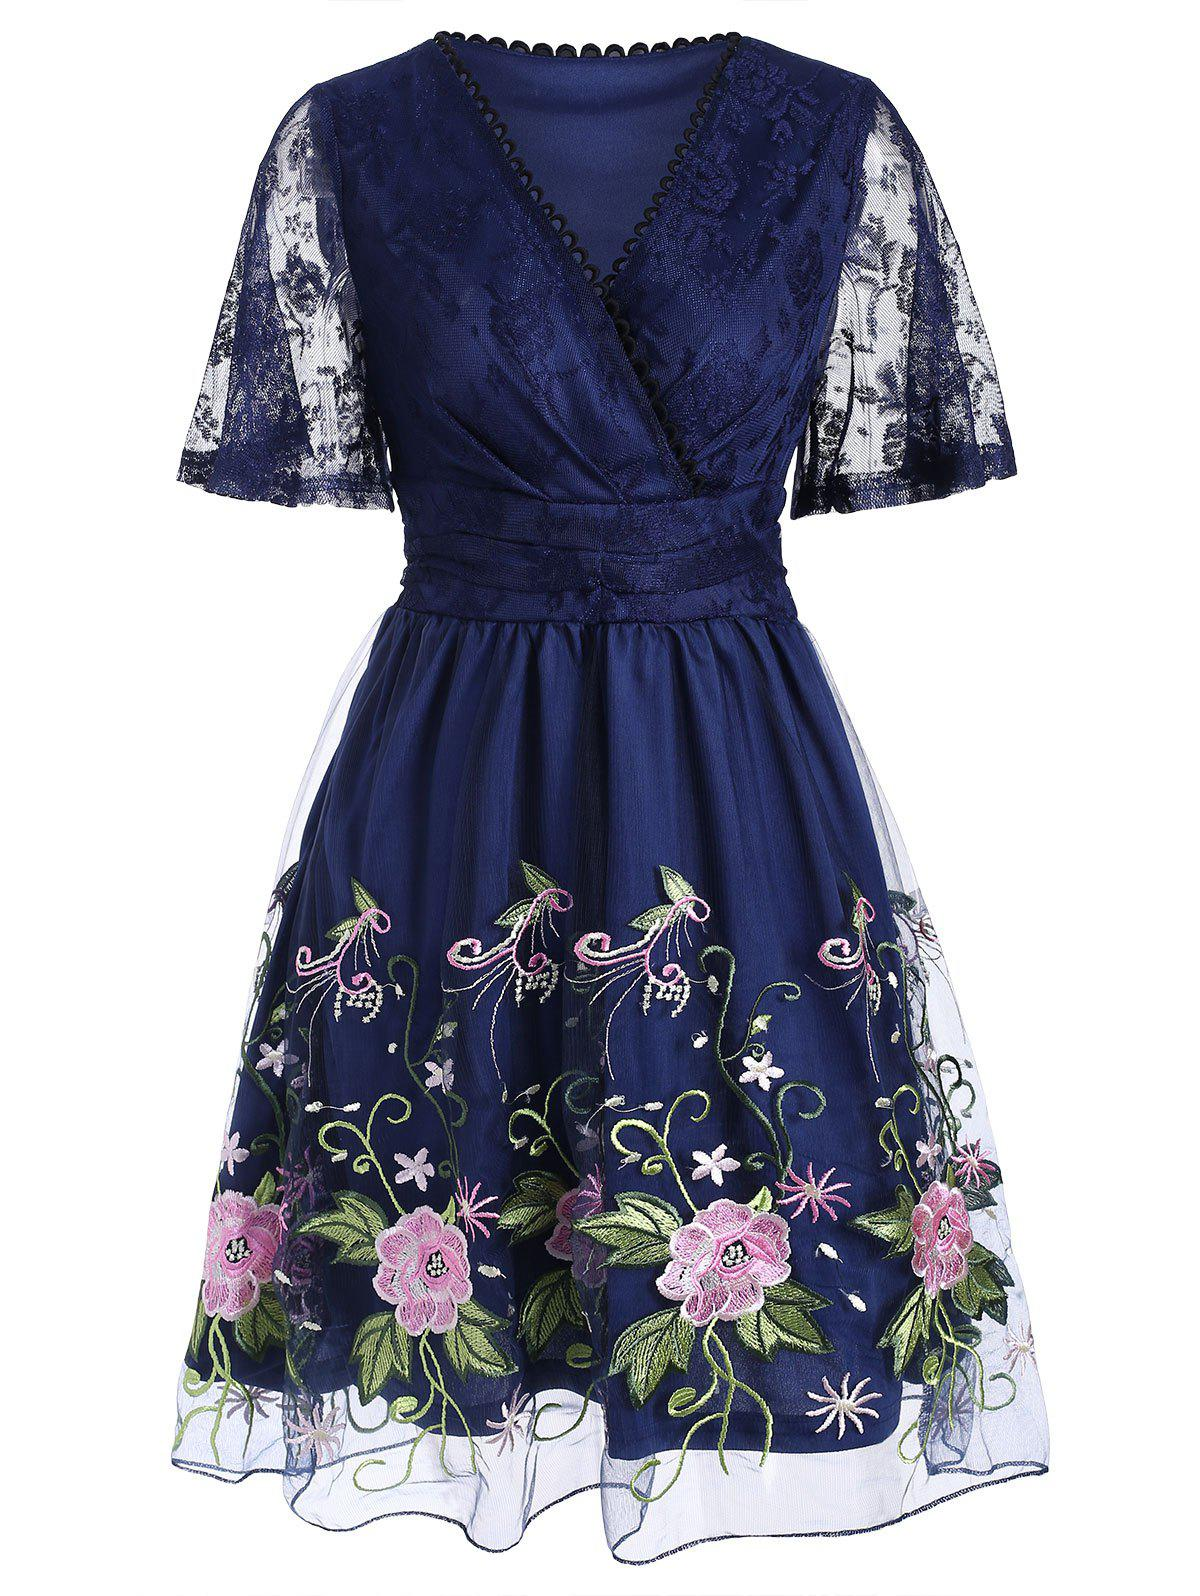 Online Picot Floral Embroidered Mesh Overlay Dress